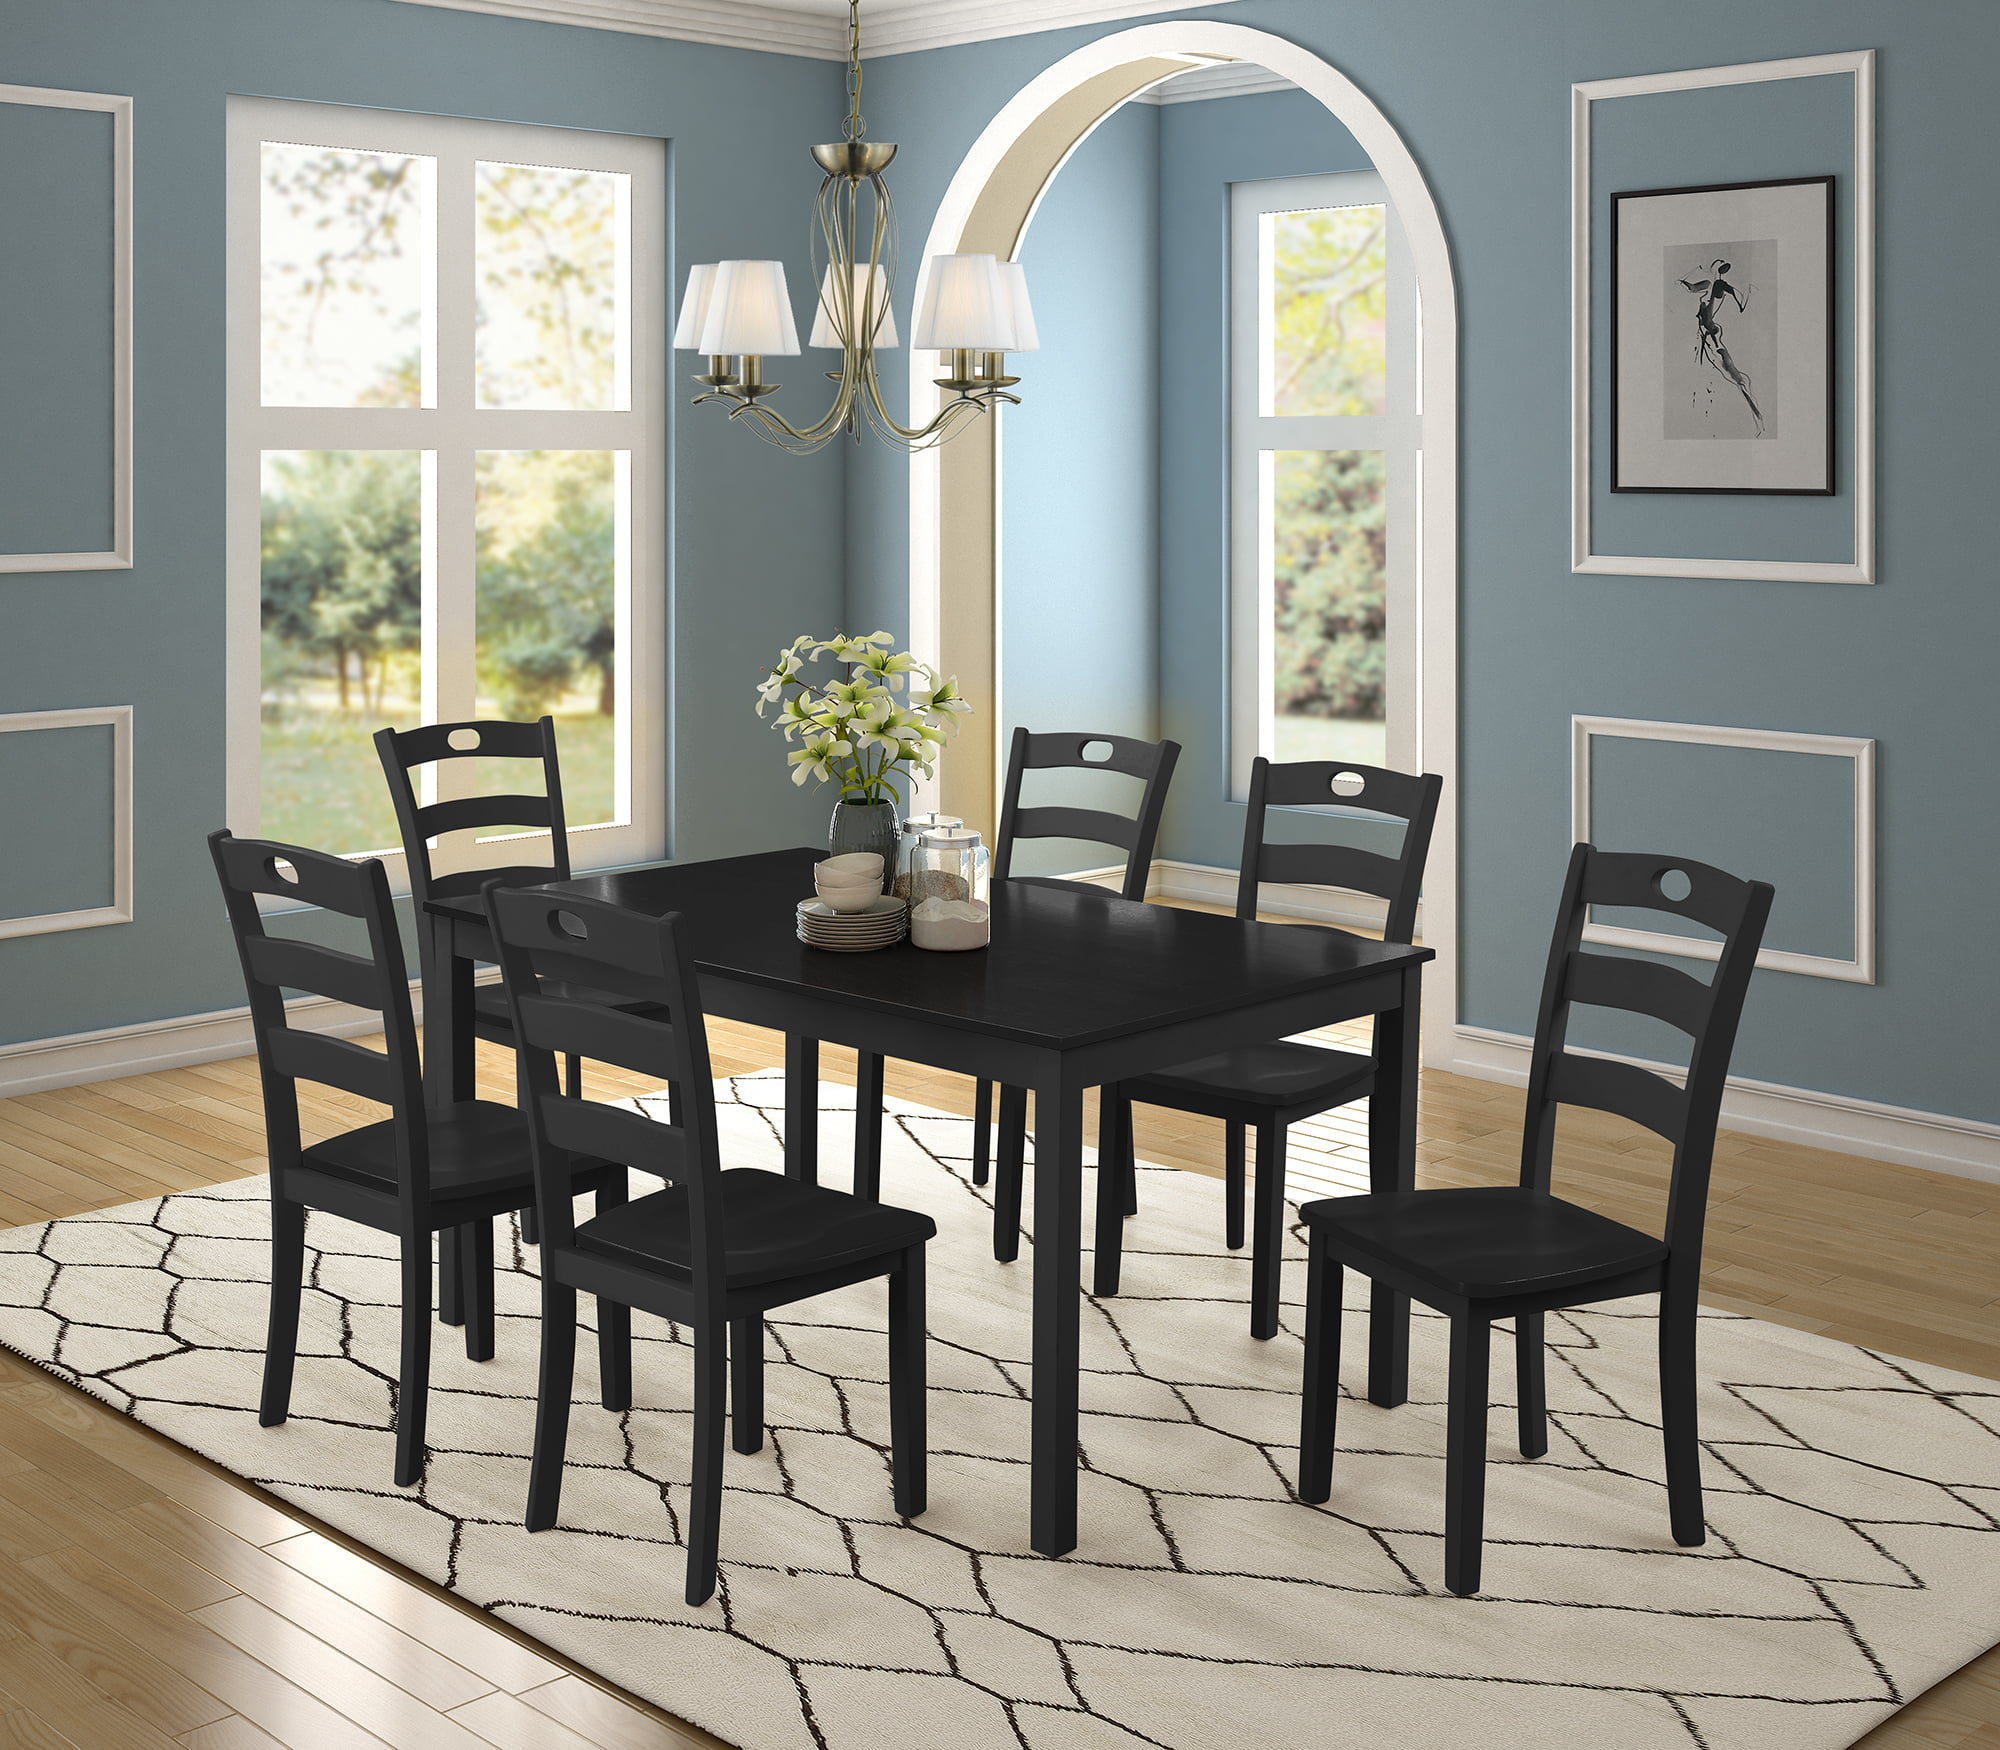 Dining Room Table Set, 7 Piece Dining Table Sets With Dining Chairs For 6, Heavy Duty Wooden Rectangular Kitchen Table Set With Black Finish For Home, Kitchen, Living Room, Restaurant, L941 -